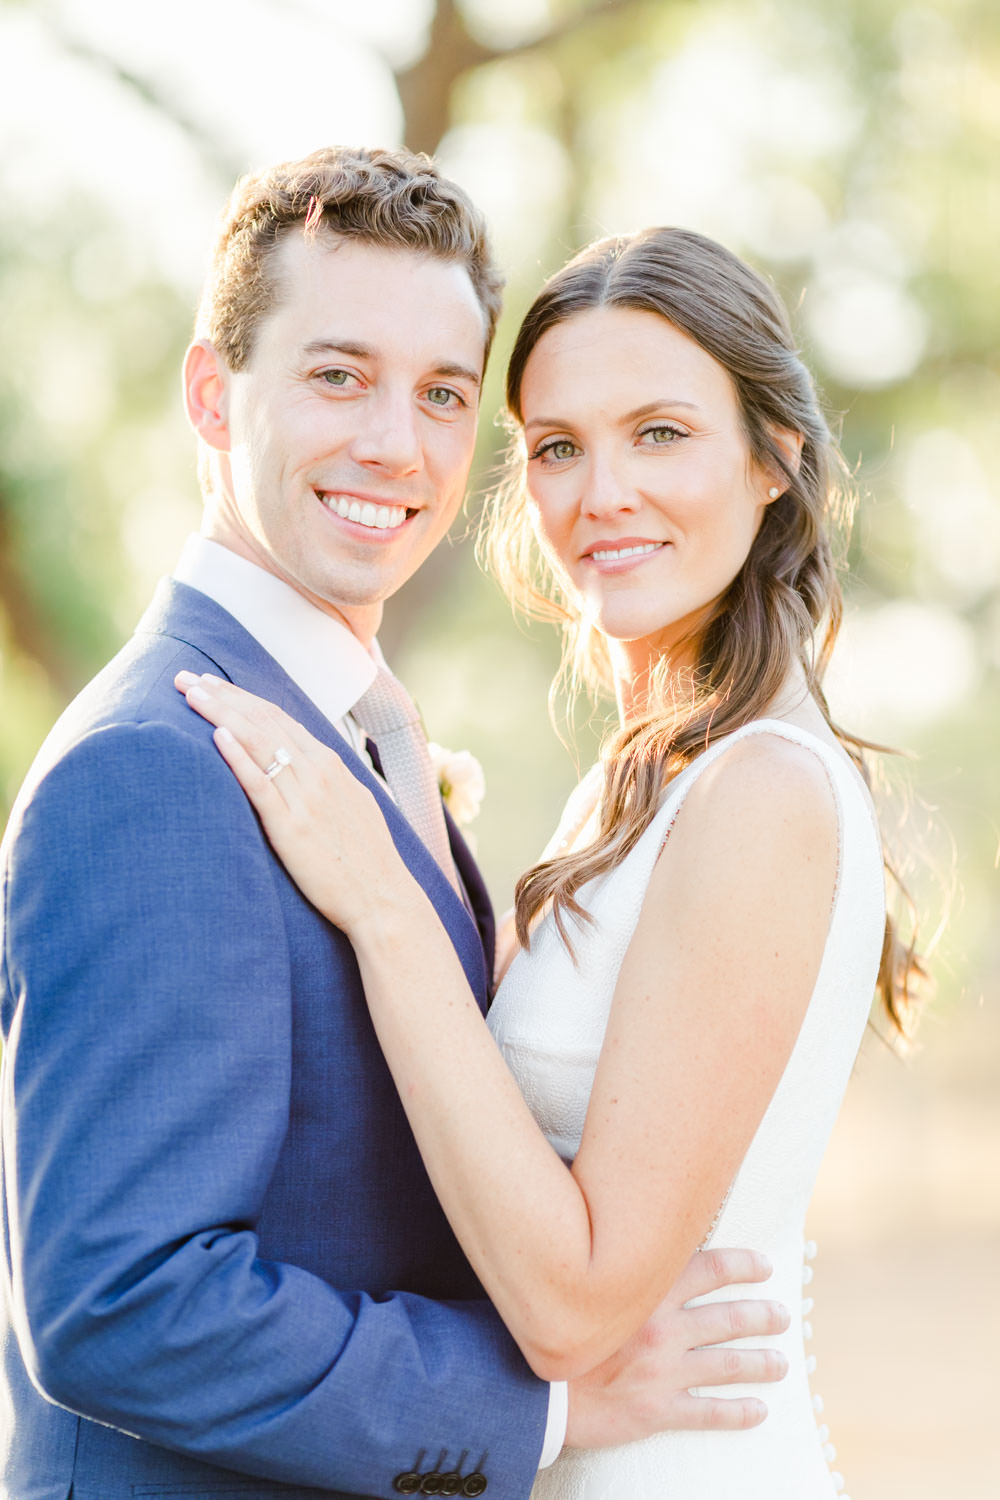 Bride and groom portrait around vineyard vines, Cavin Elizabeth Photography